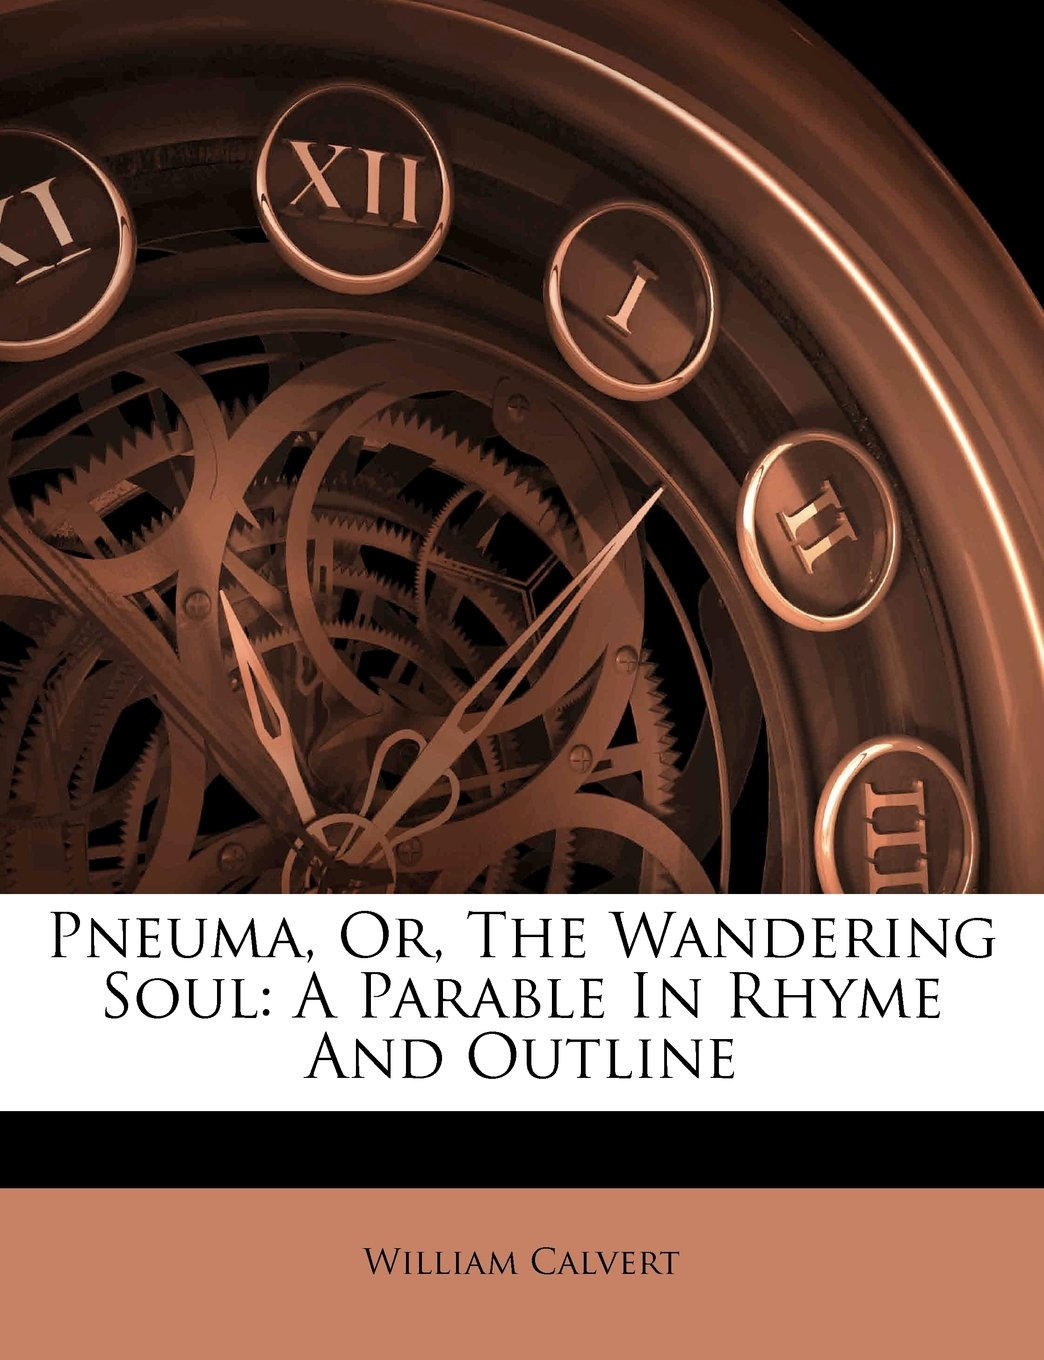 Pneuma, Or, The Wandering Soul: A Parable In Rhyme And Outline ebook